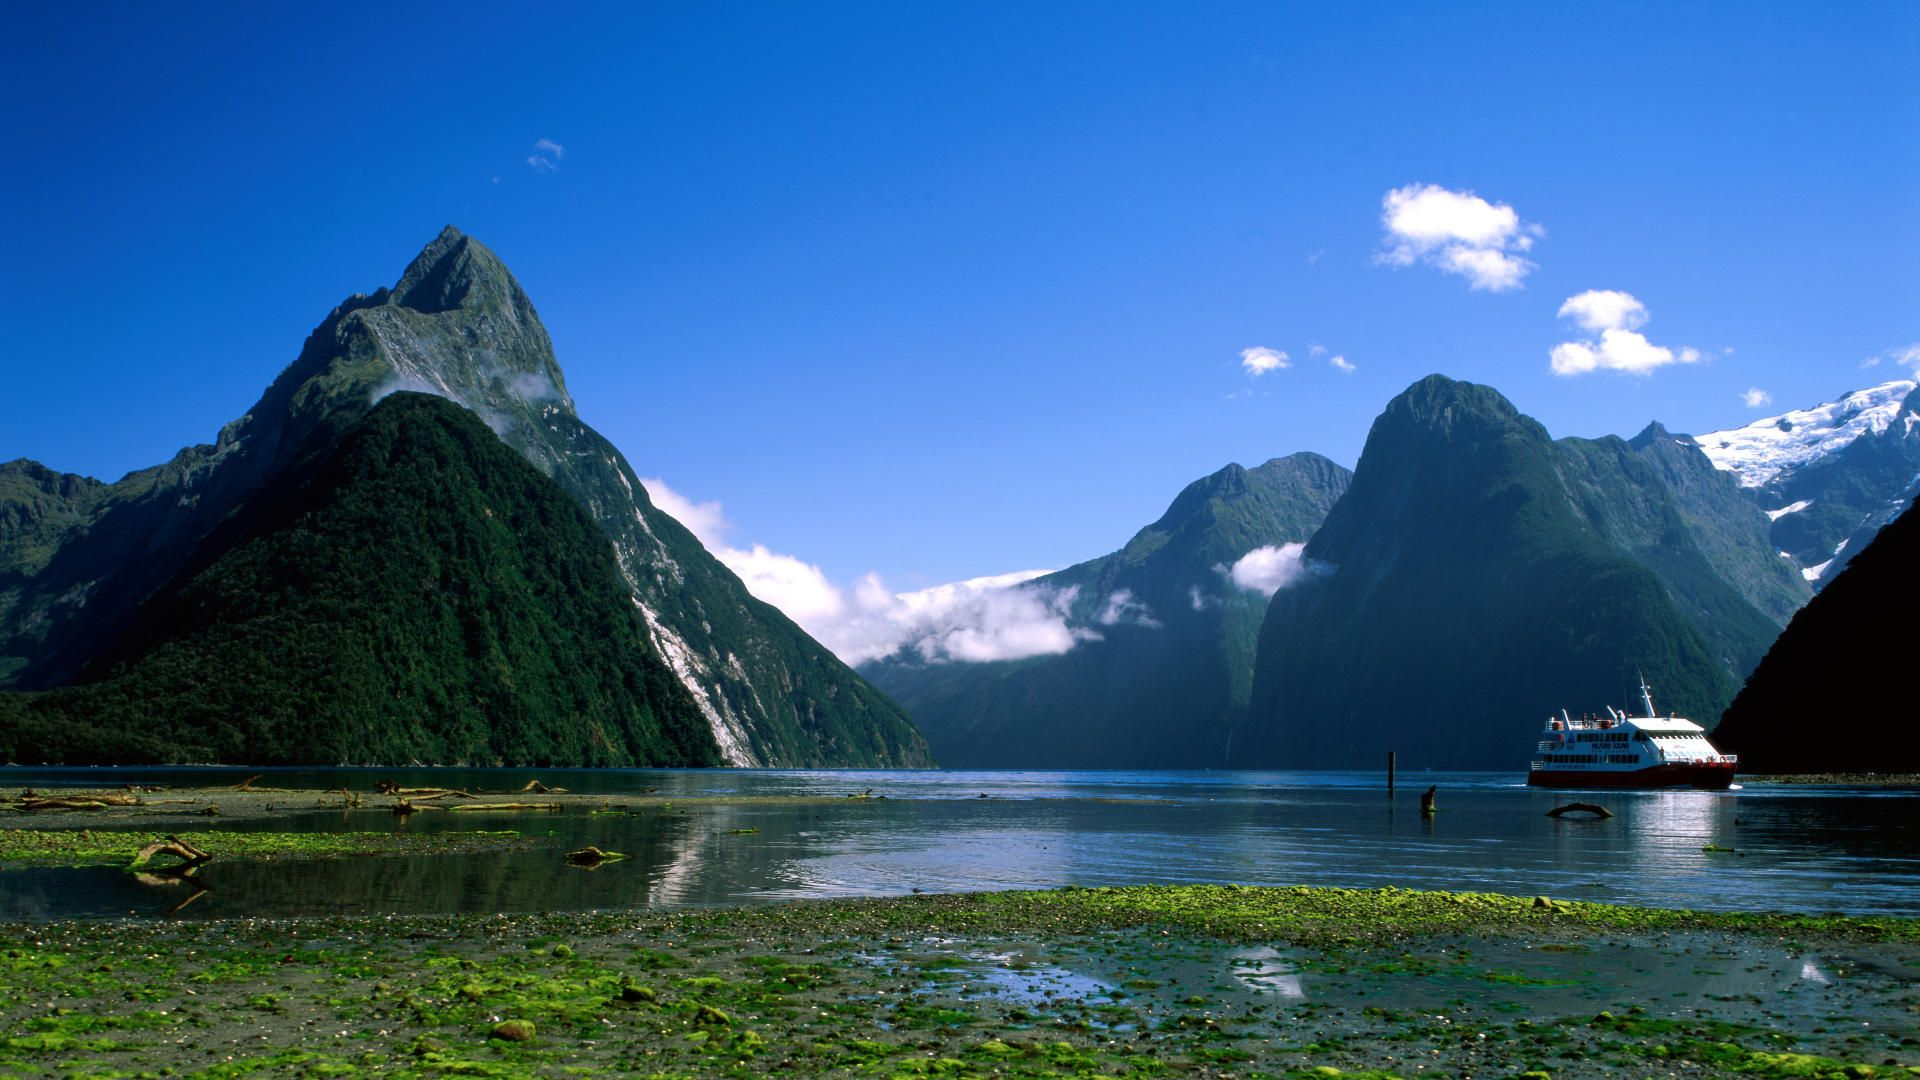 New Zealand, Home of the Middle Earth!